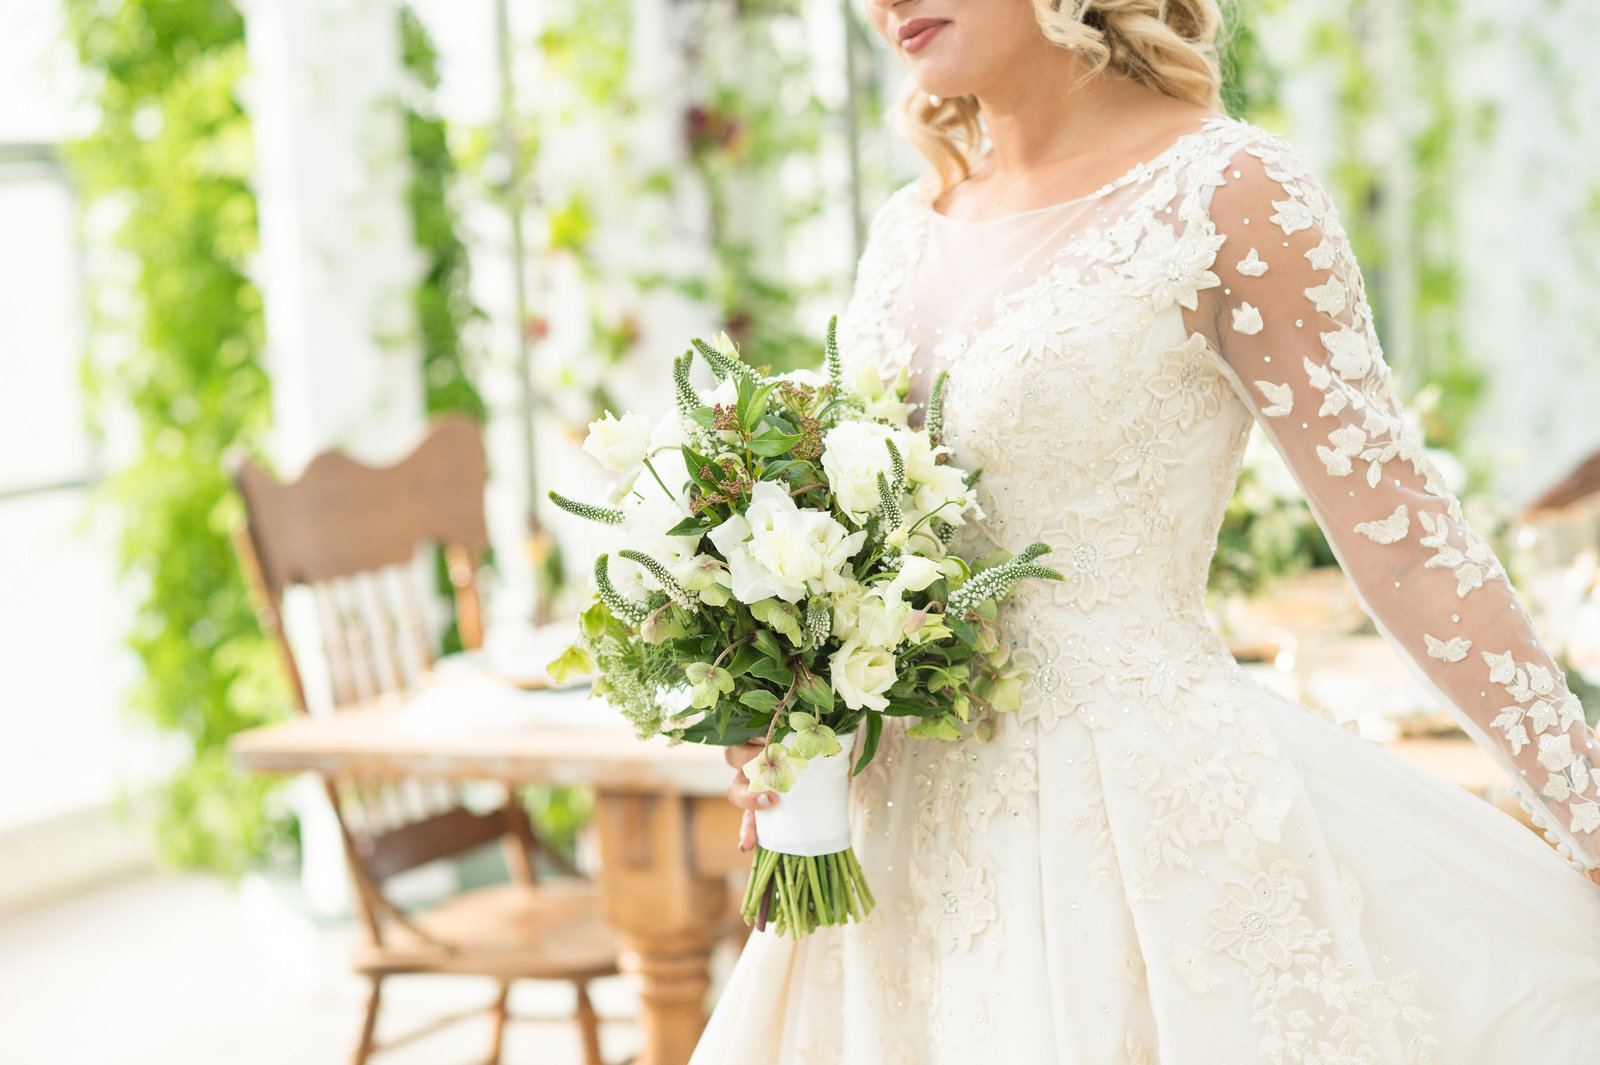 Beautiful bride in room of greenery holding bouquet